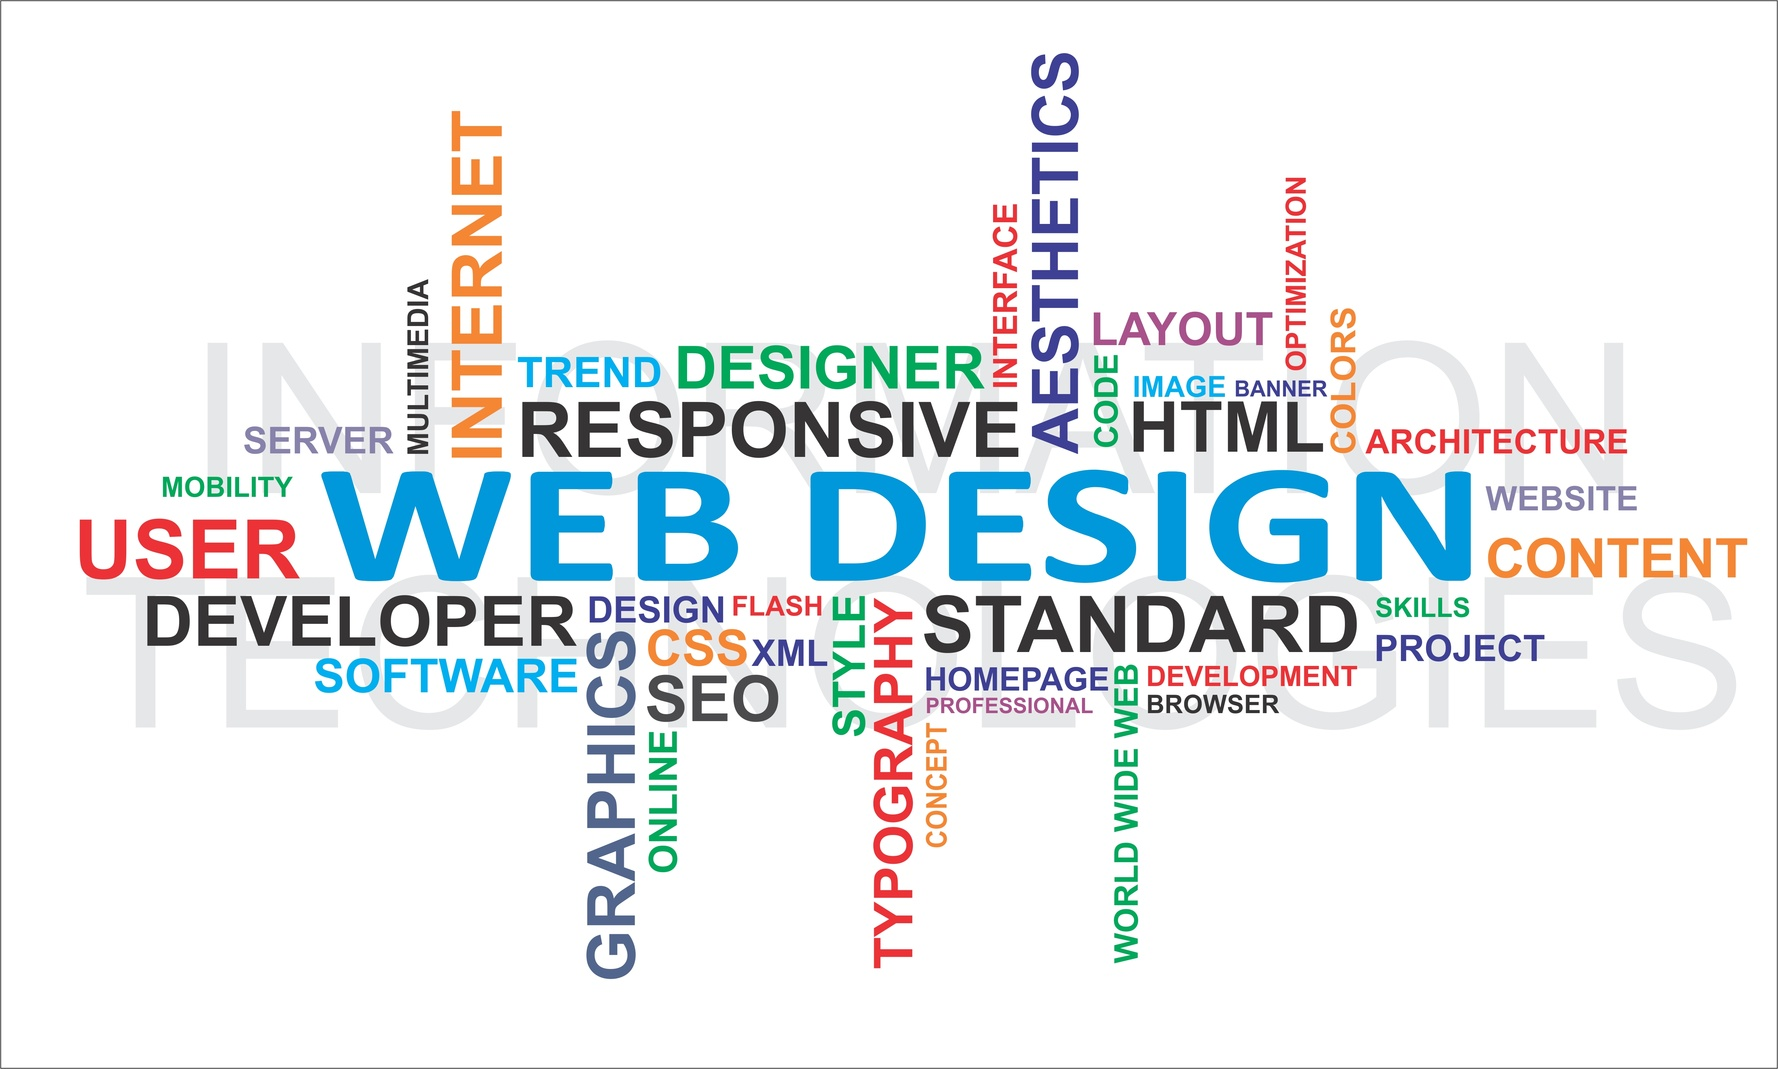 Advanced Web Design ONLINE - Spring 2019